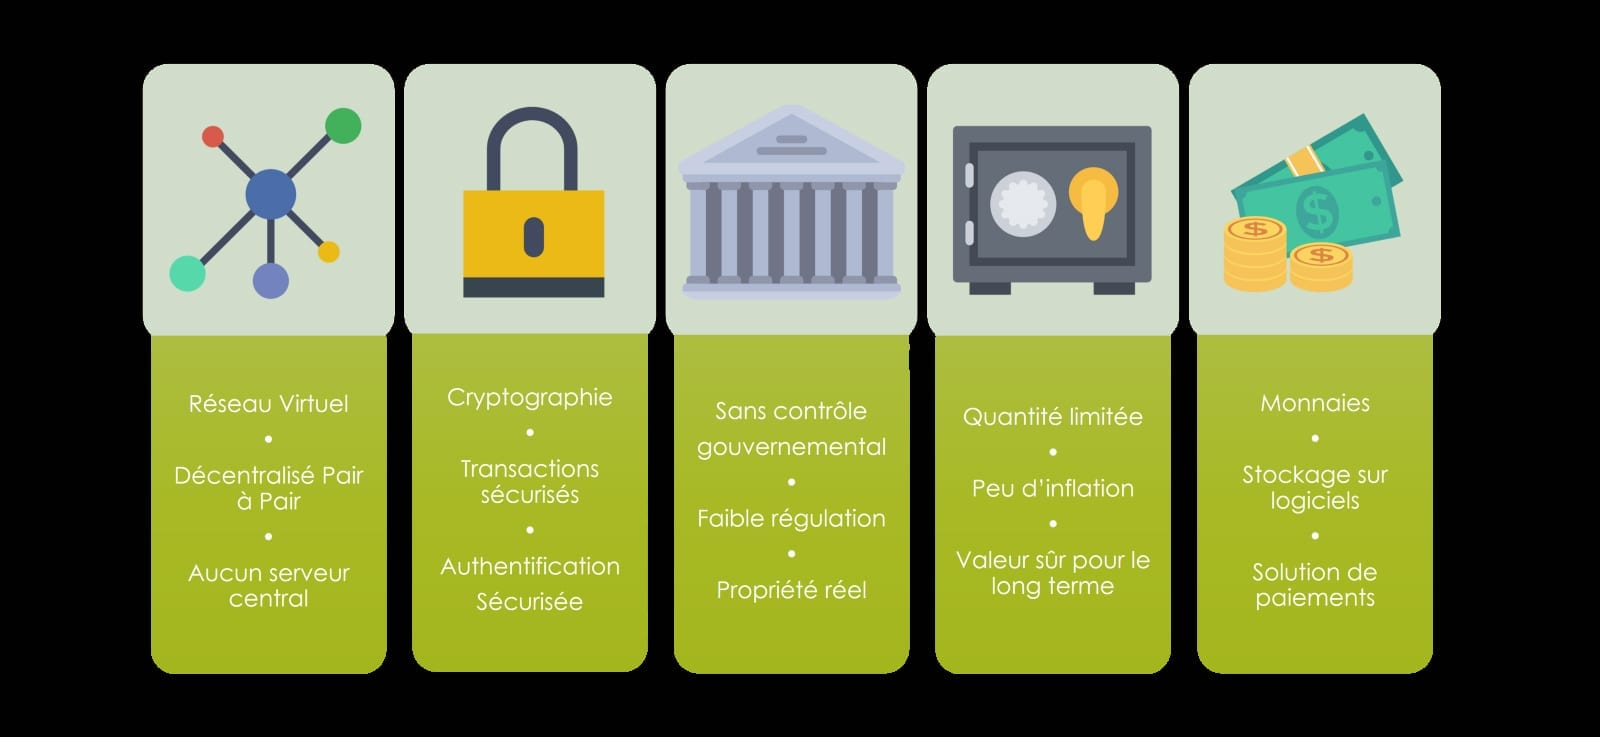 description of cryptocurrencies